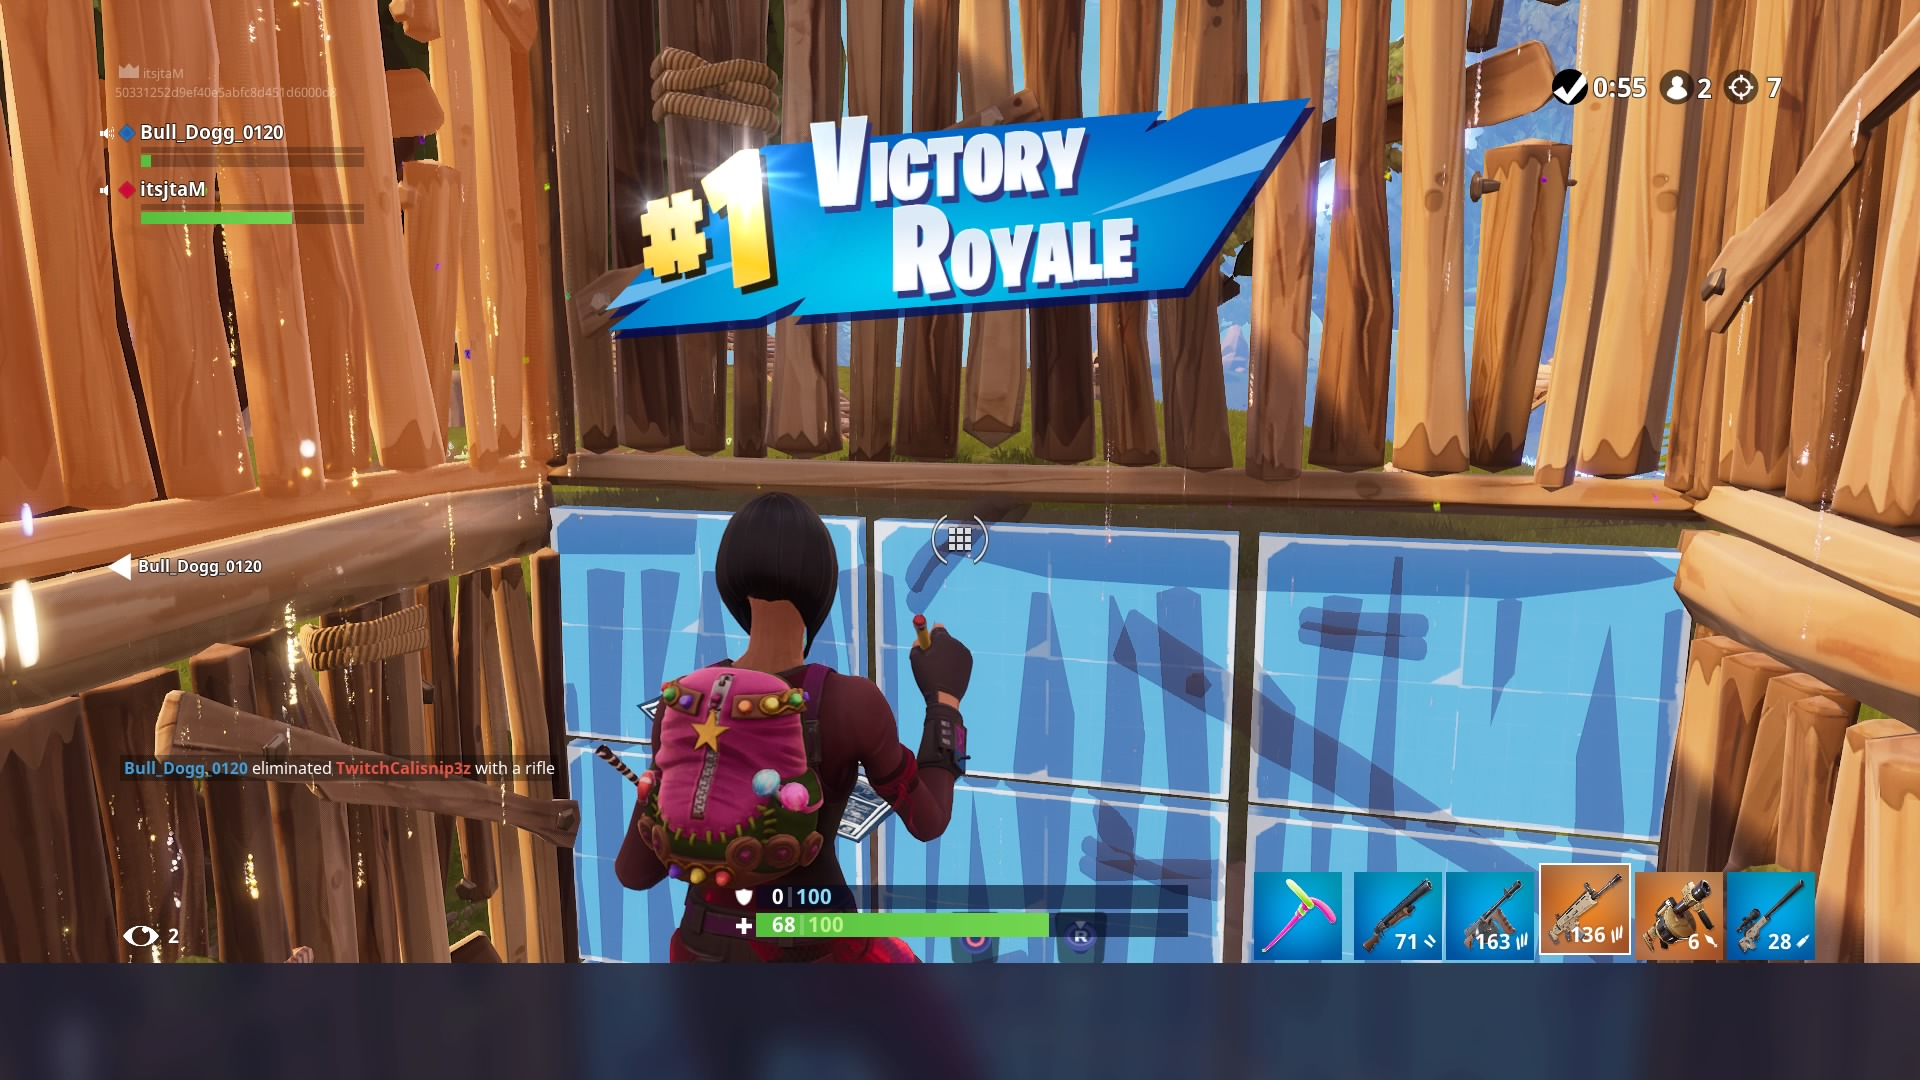 fortnite duos victory royale wallpaper 64811